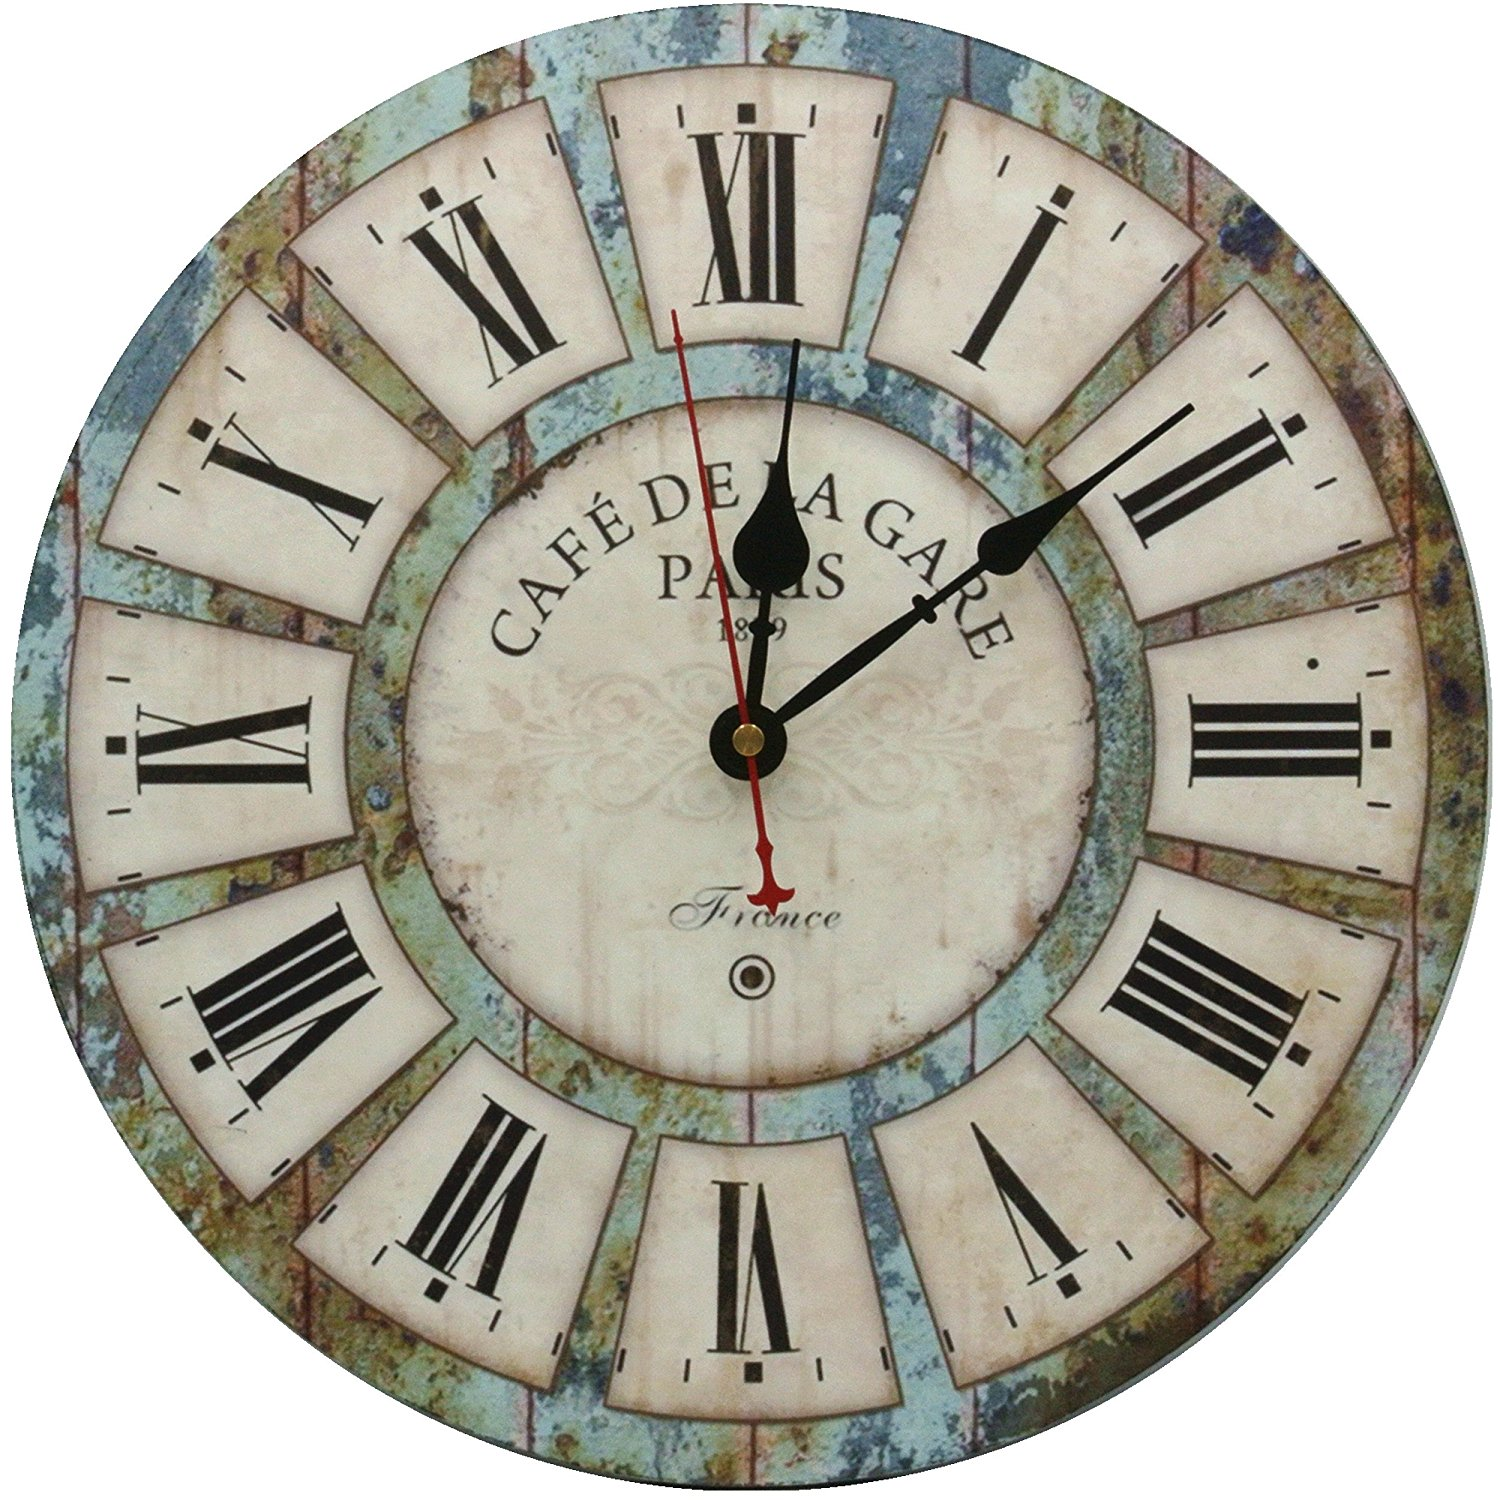 """Large Decorative Wall Clock,Silent Wall Clock Non Ticking for Living Room Kitchen Bathroom Bedroom Wood Round Vintage Decor 14"""" RELIAN"""